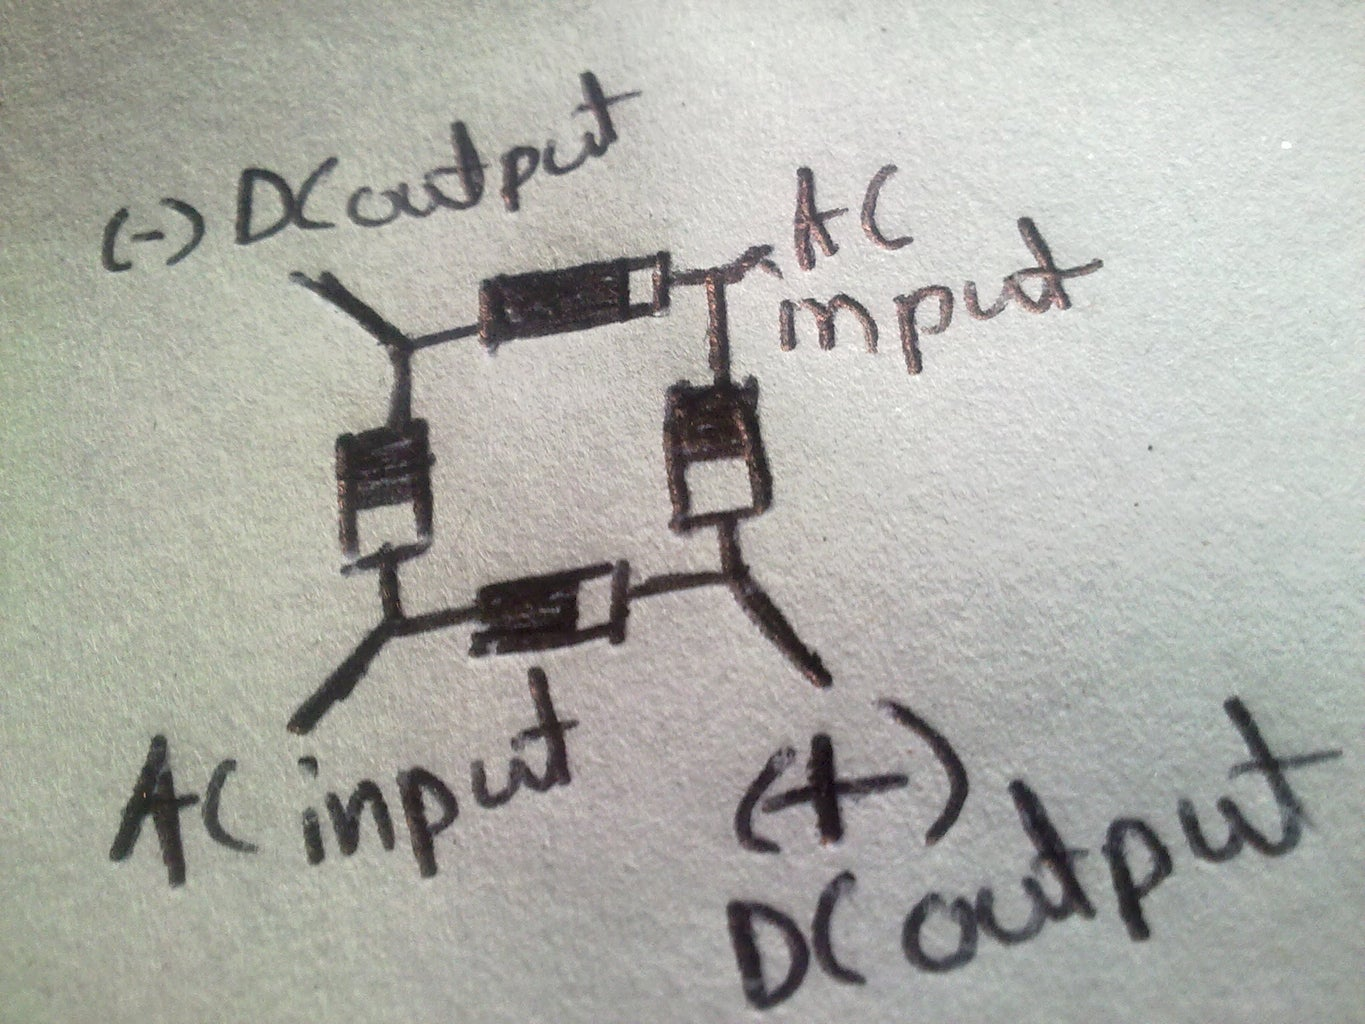 The Diagram of the Circuit